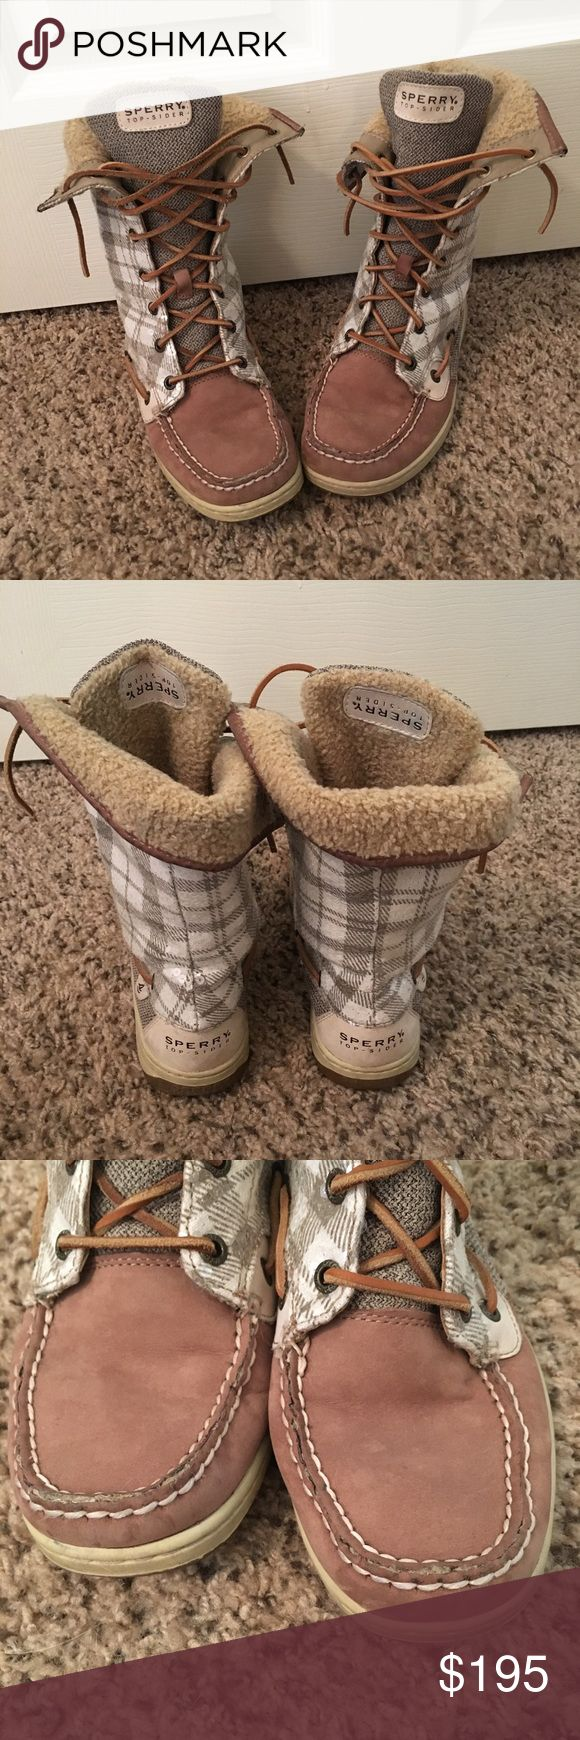 🍁SALE🍁Sperry Top-Sider Boots Tan with white plaid and sequins, they fold over or can be left straight, they have been worn, they are still in good condition, they are a size 8.5. Sperry Top-Sider Shoes Lace Up Boots